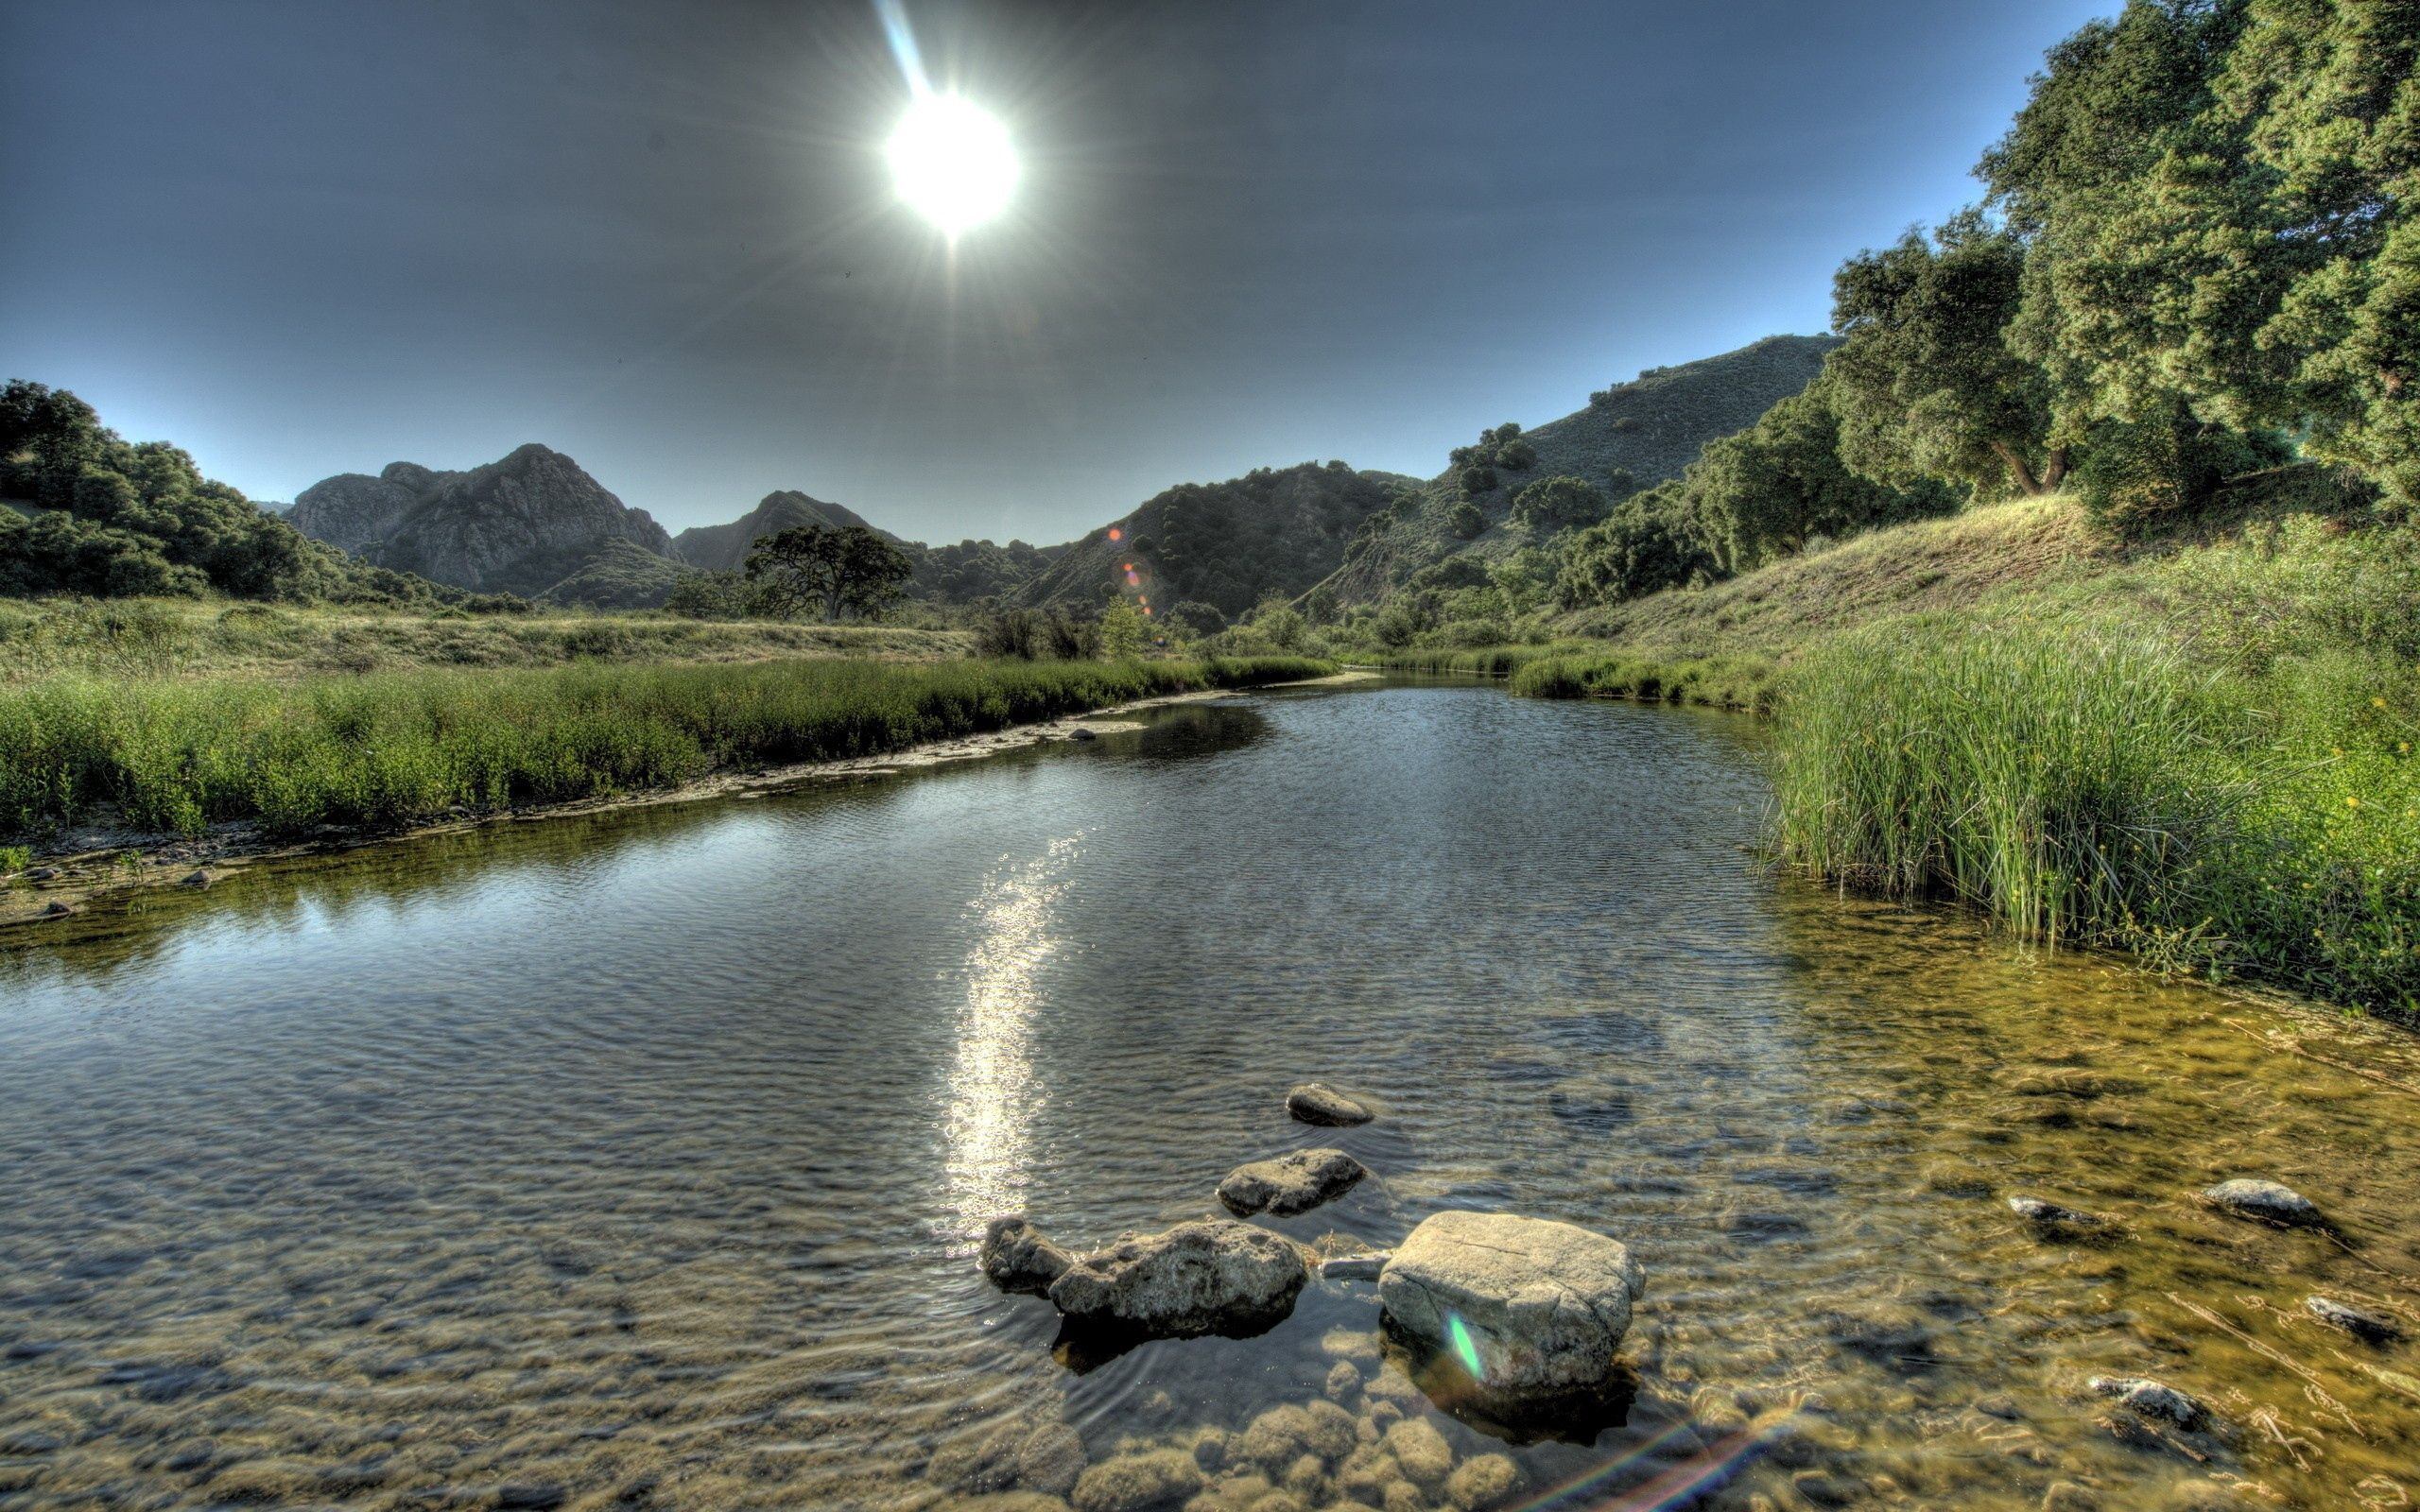 150195 download wallpaper Nature, Rivers, Stones, Grass, Sky, Mountains screensavers and pictures for free